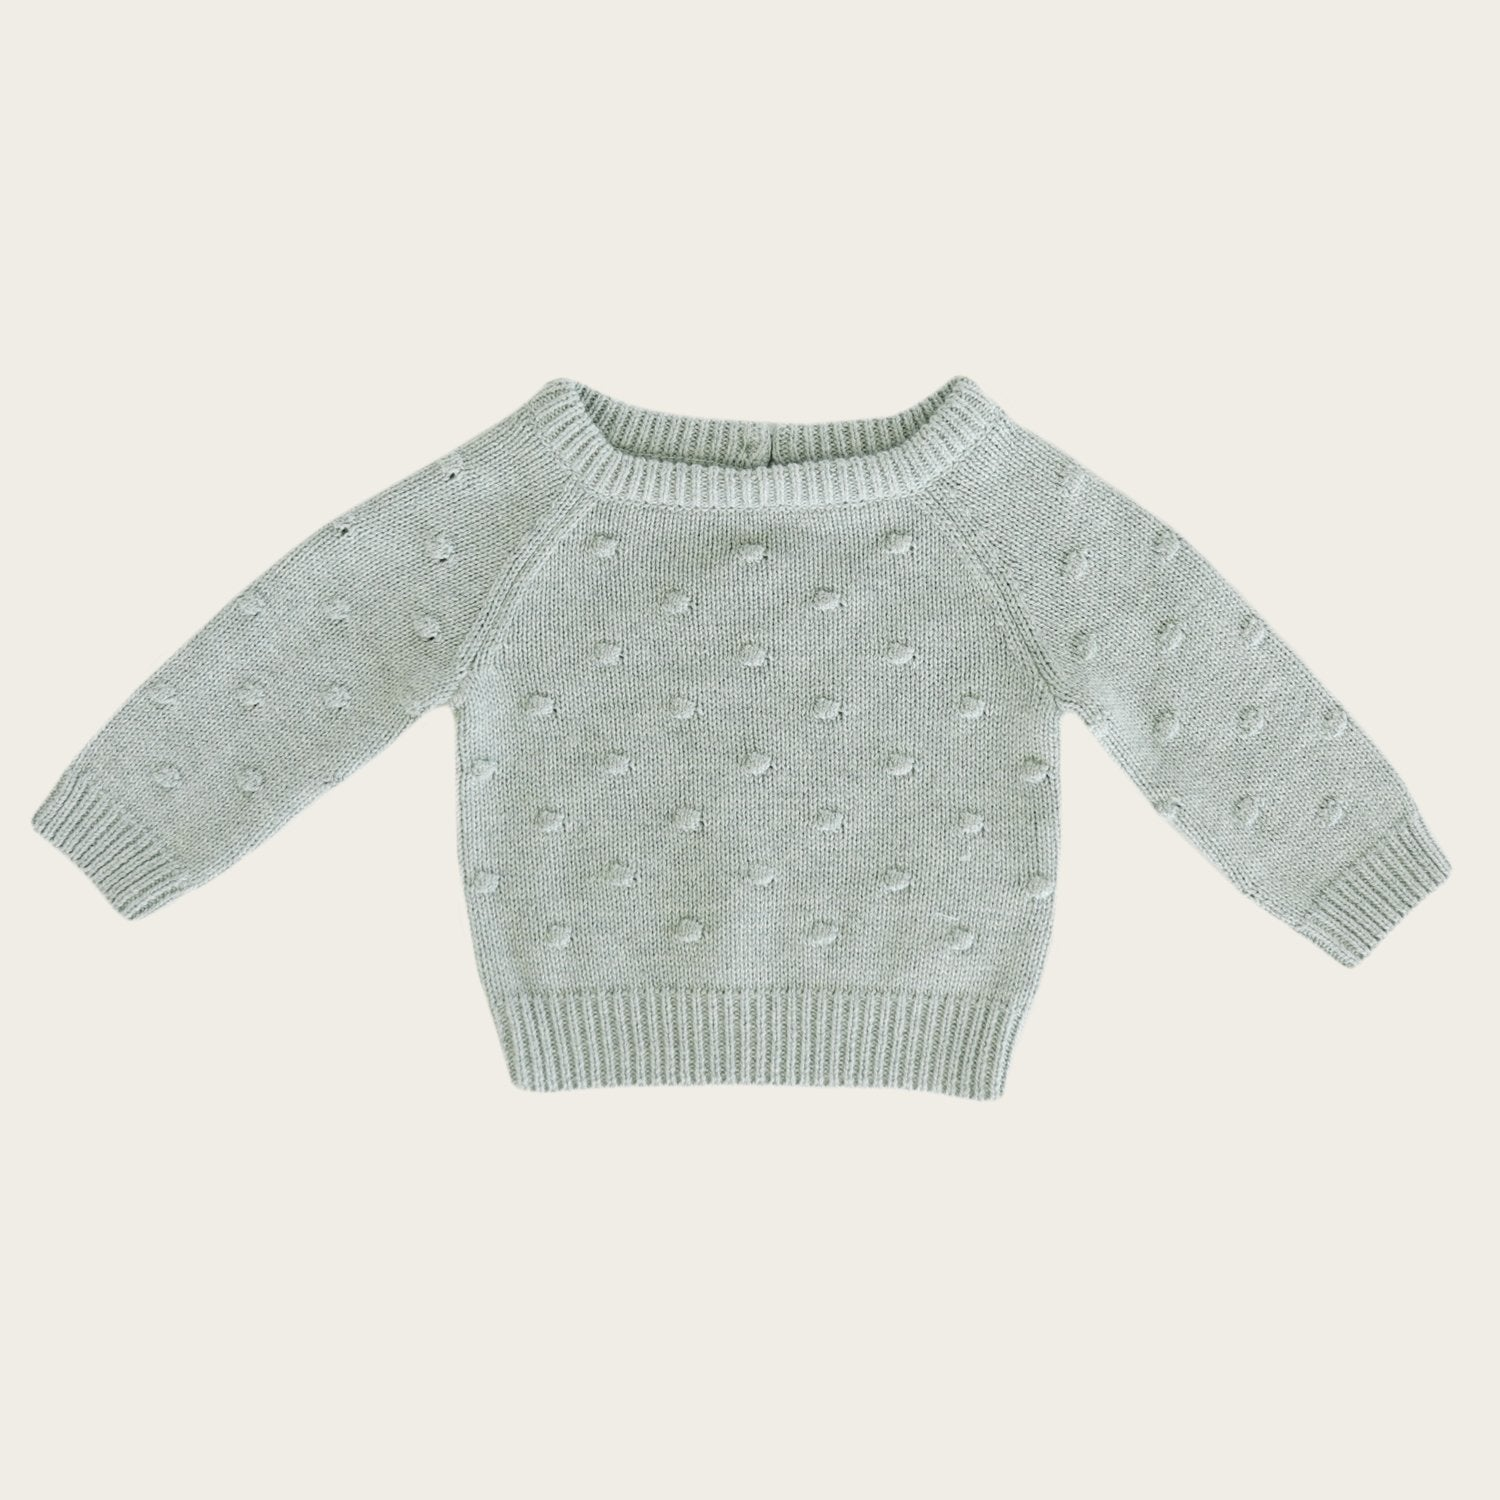 Dotty Knit (Seabreeze)